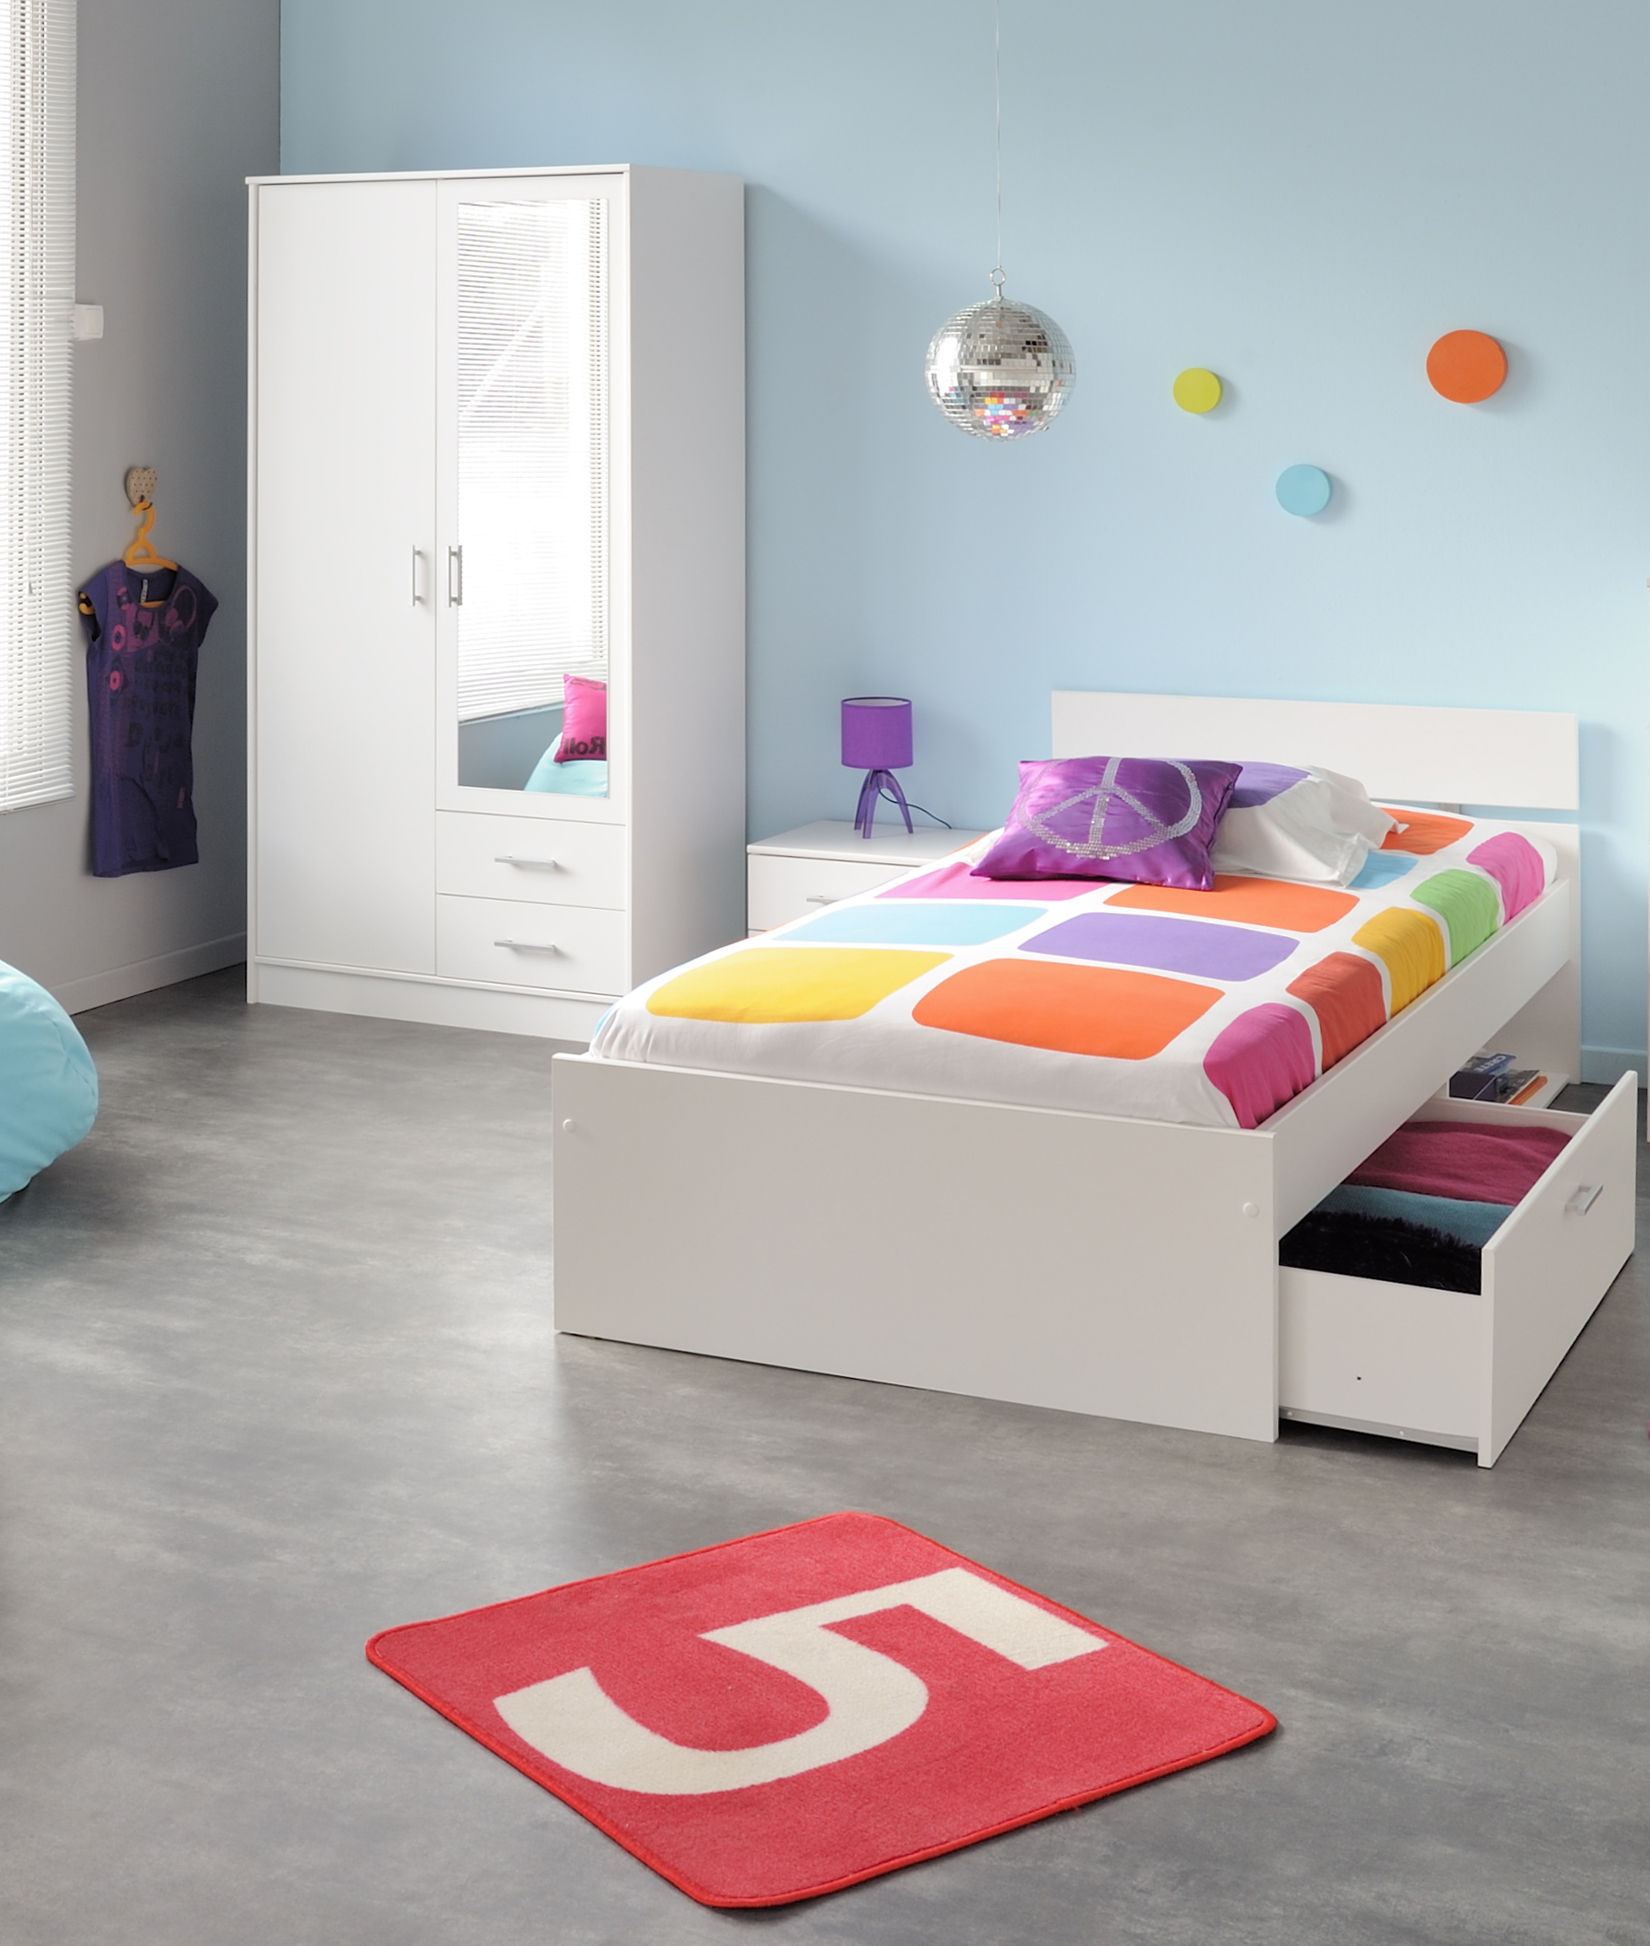 3 teiliges kinderzimmer set infinity 154 von parisot komplett set s kinderzimmer. Black Bedroom Furniture Sets. Home Design Ideas